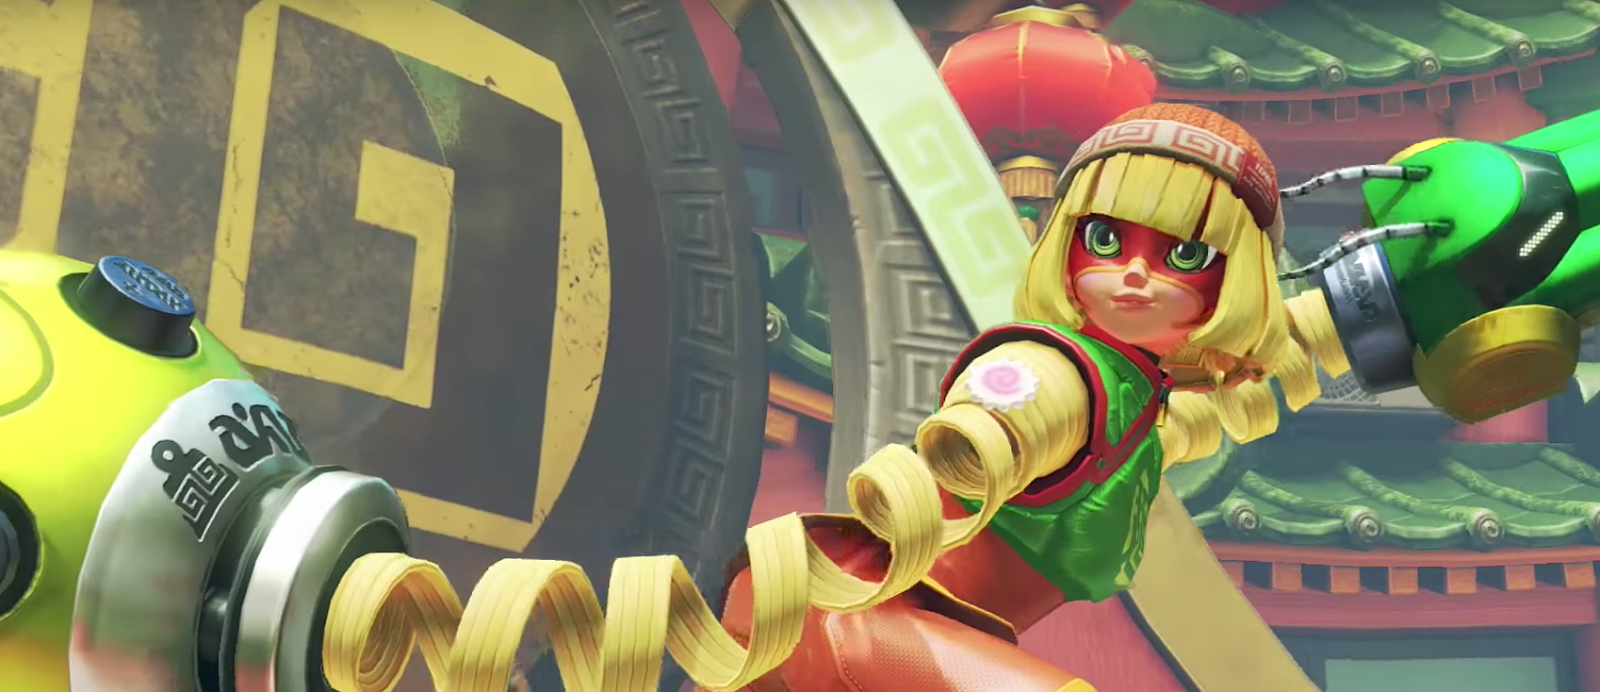 Nintendo Explains How It Came Up With Min Min's Unique Design In Arms